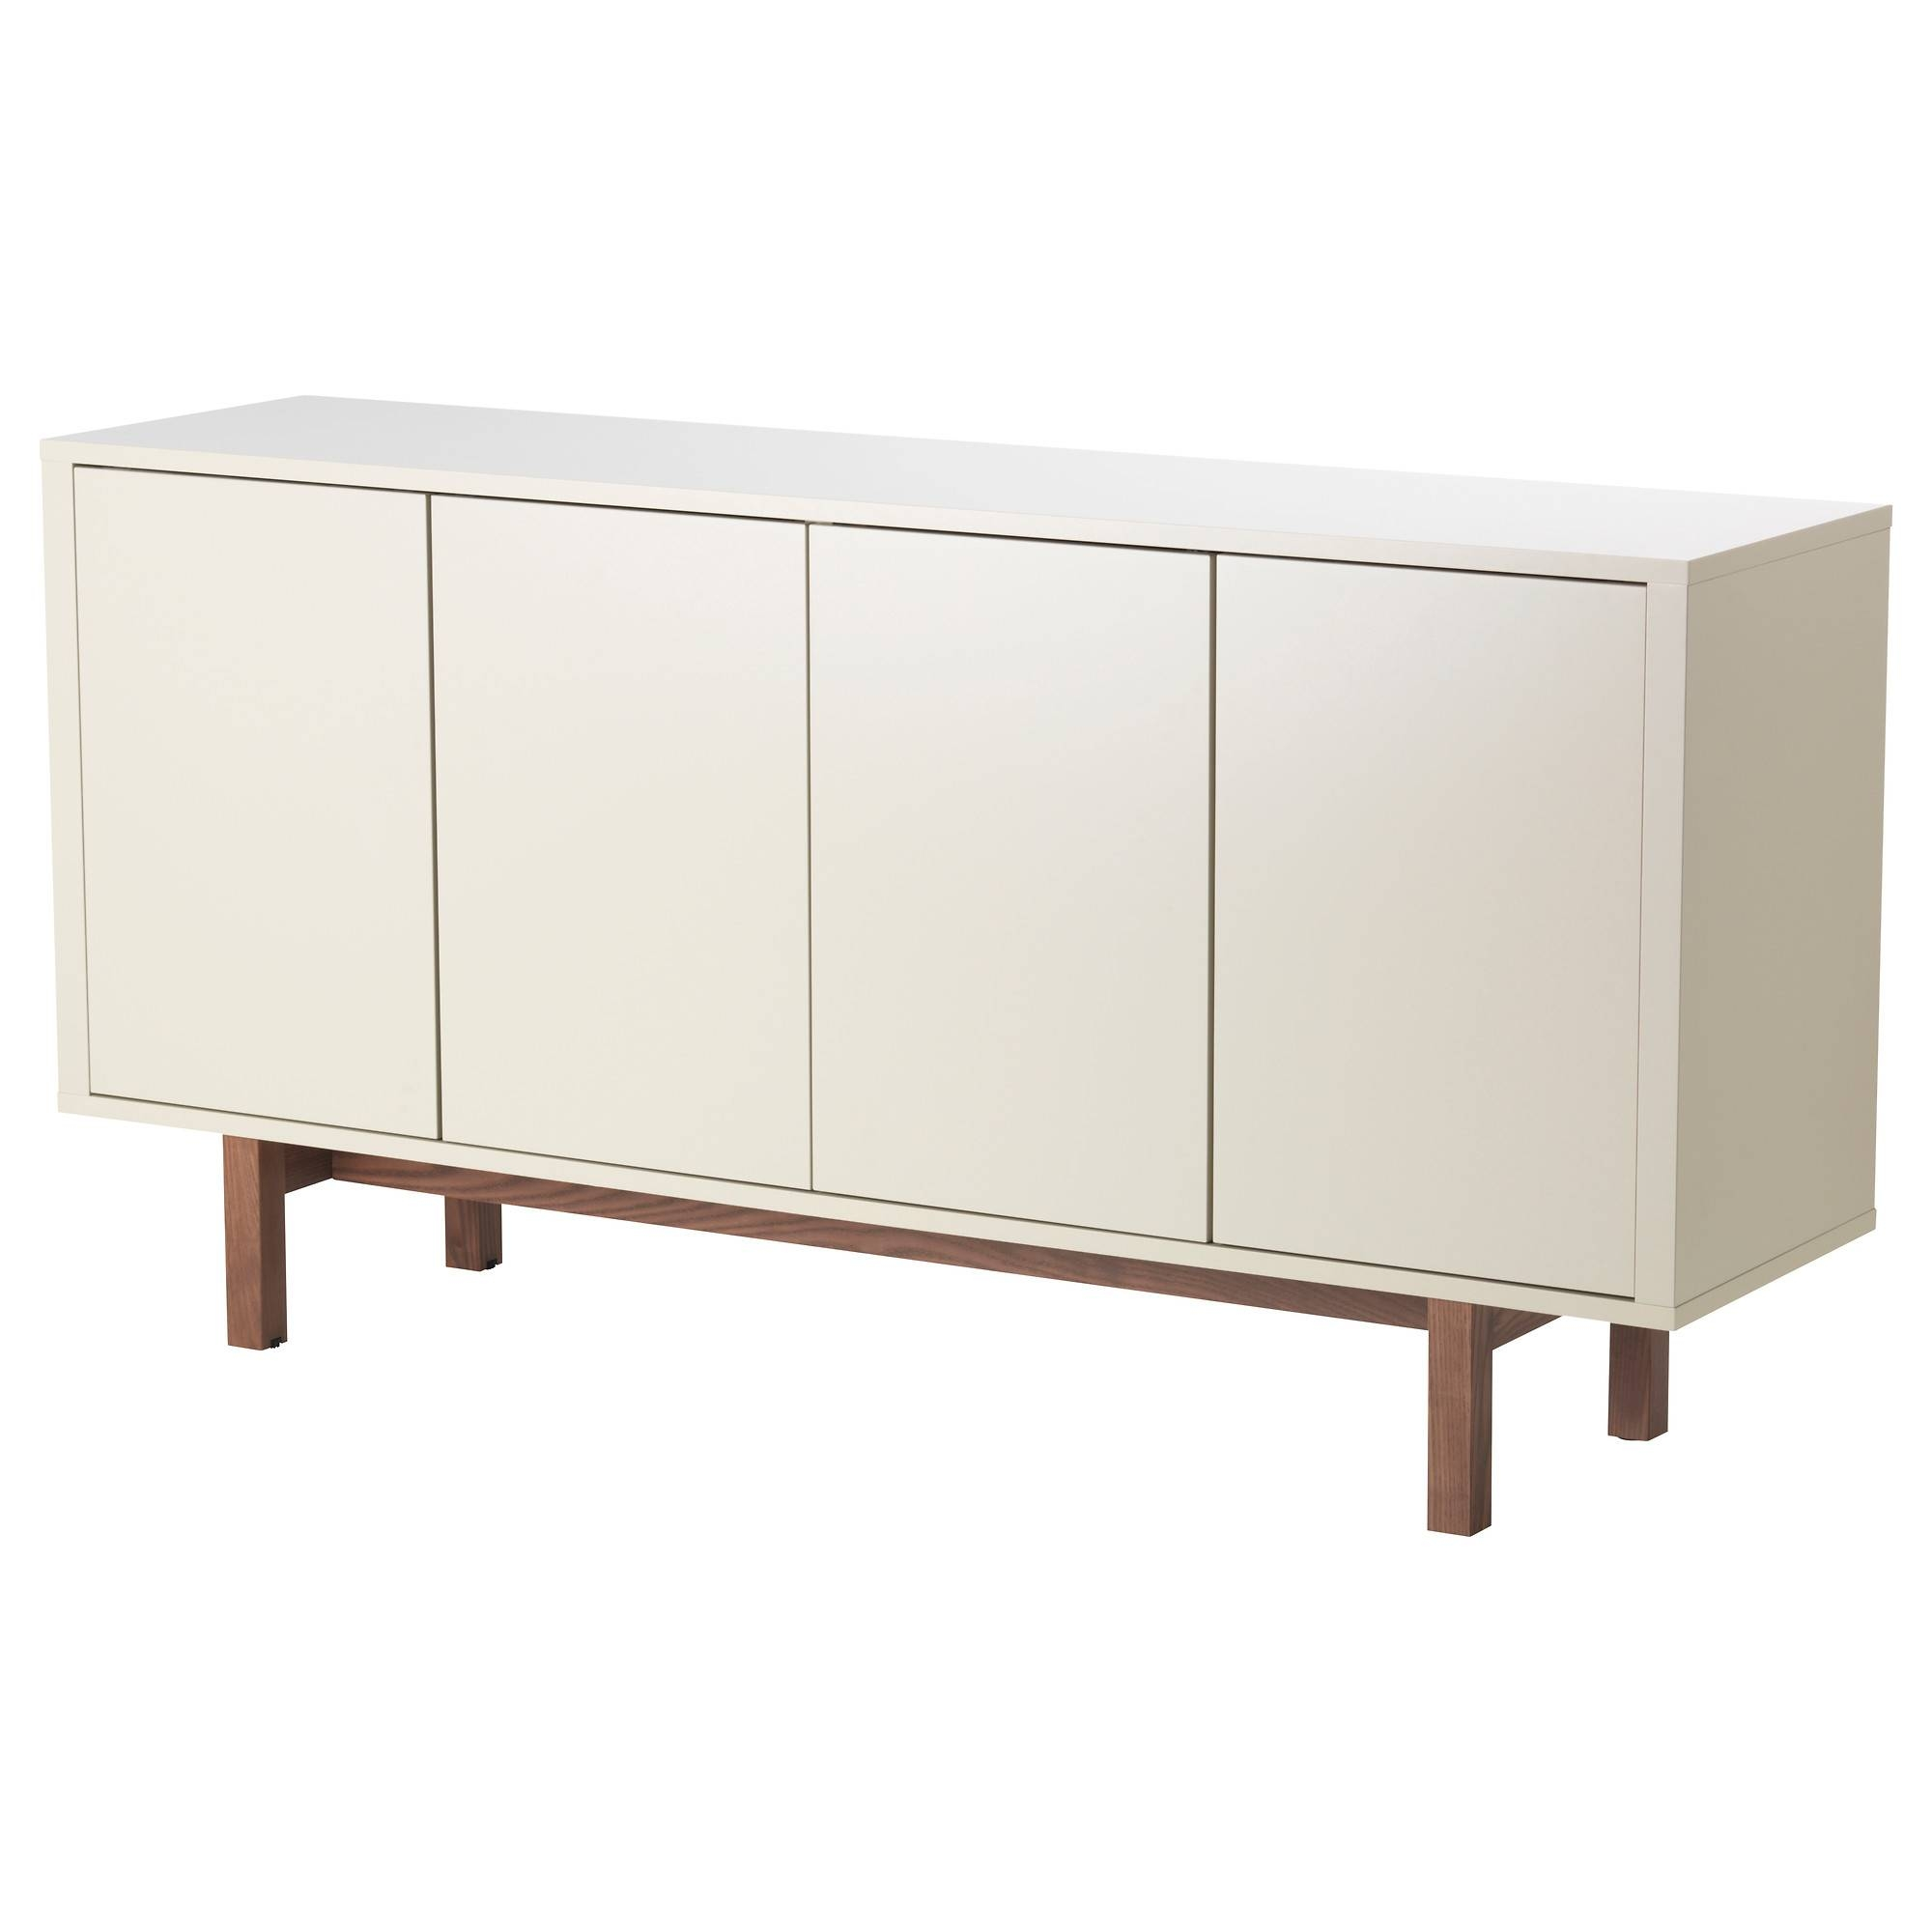 Awesome Ikea Stockholm Sideboard - Bjdgjy pertaining to Ikea Stockholm Sideboards (Image 1 of 15)